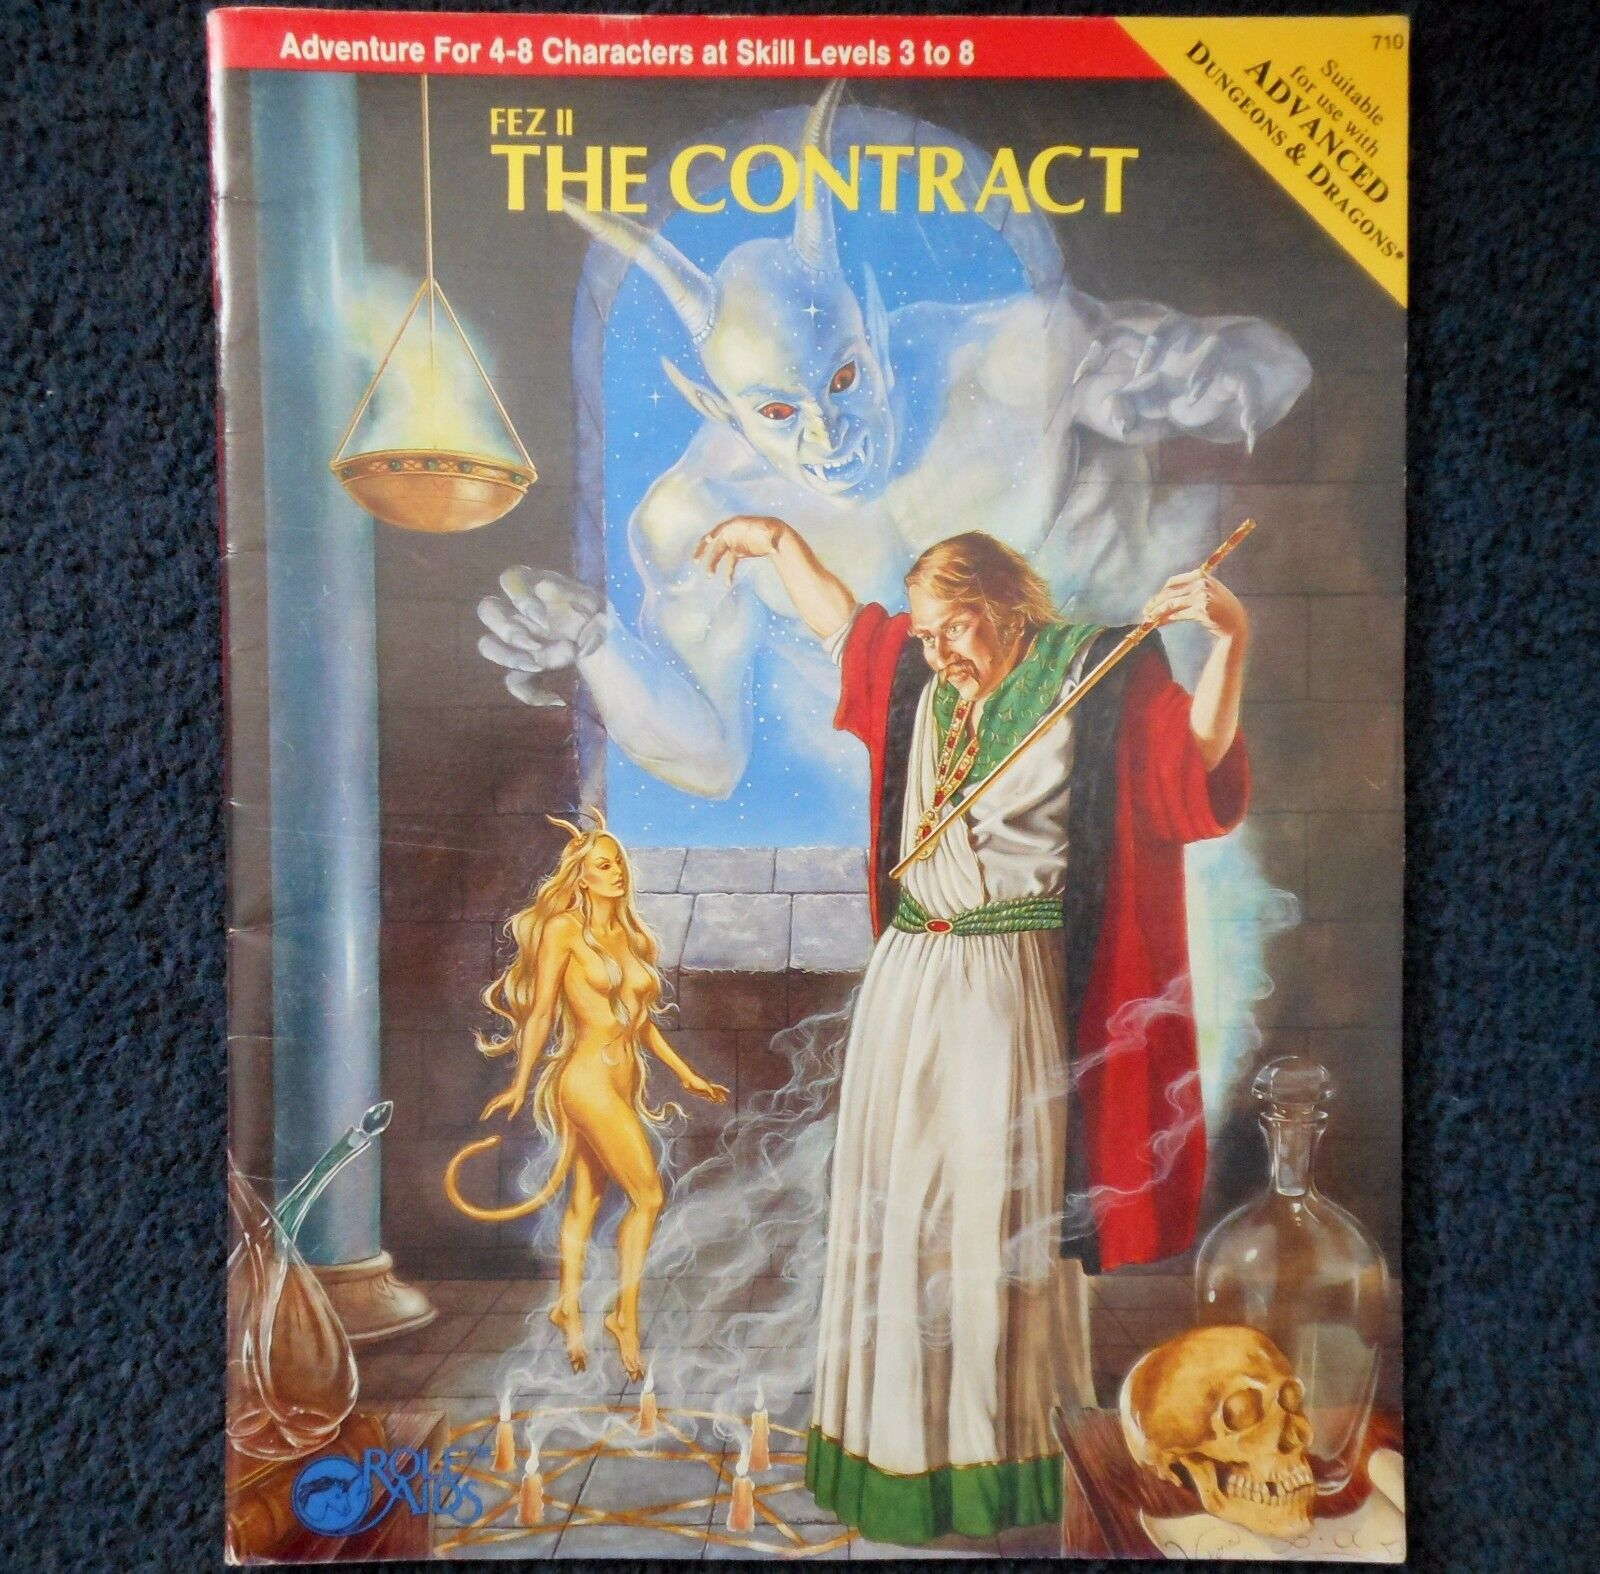 Fez II The Contract Advanced Dungeons & Dragons Role Aids Adventure Module AD&D